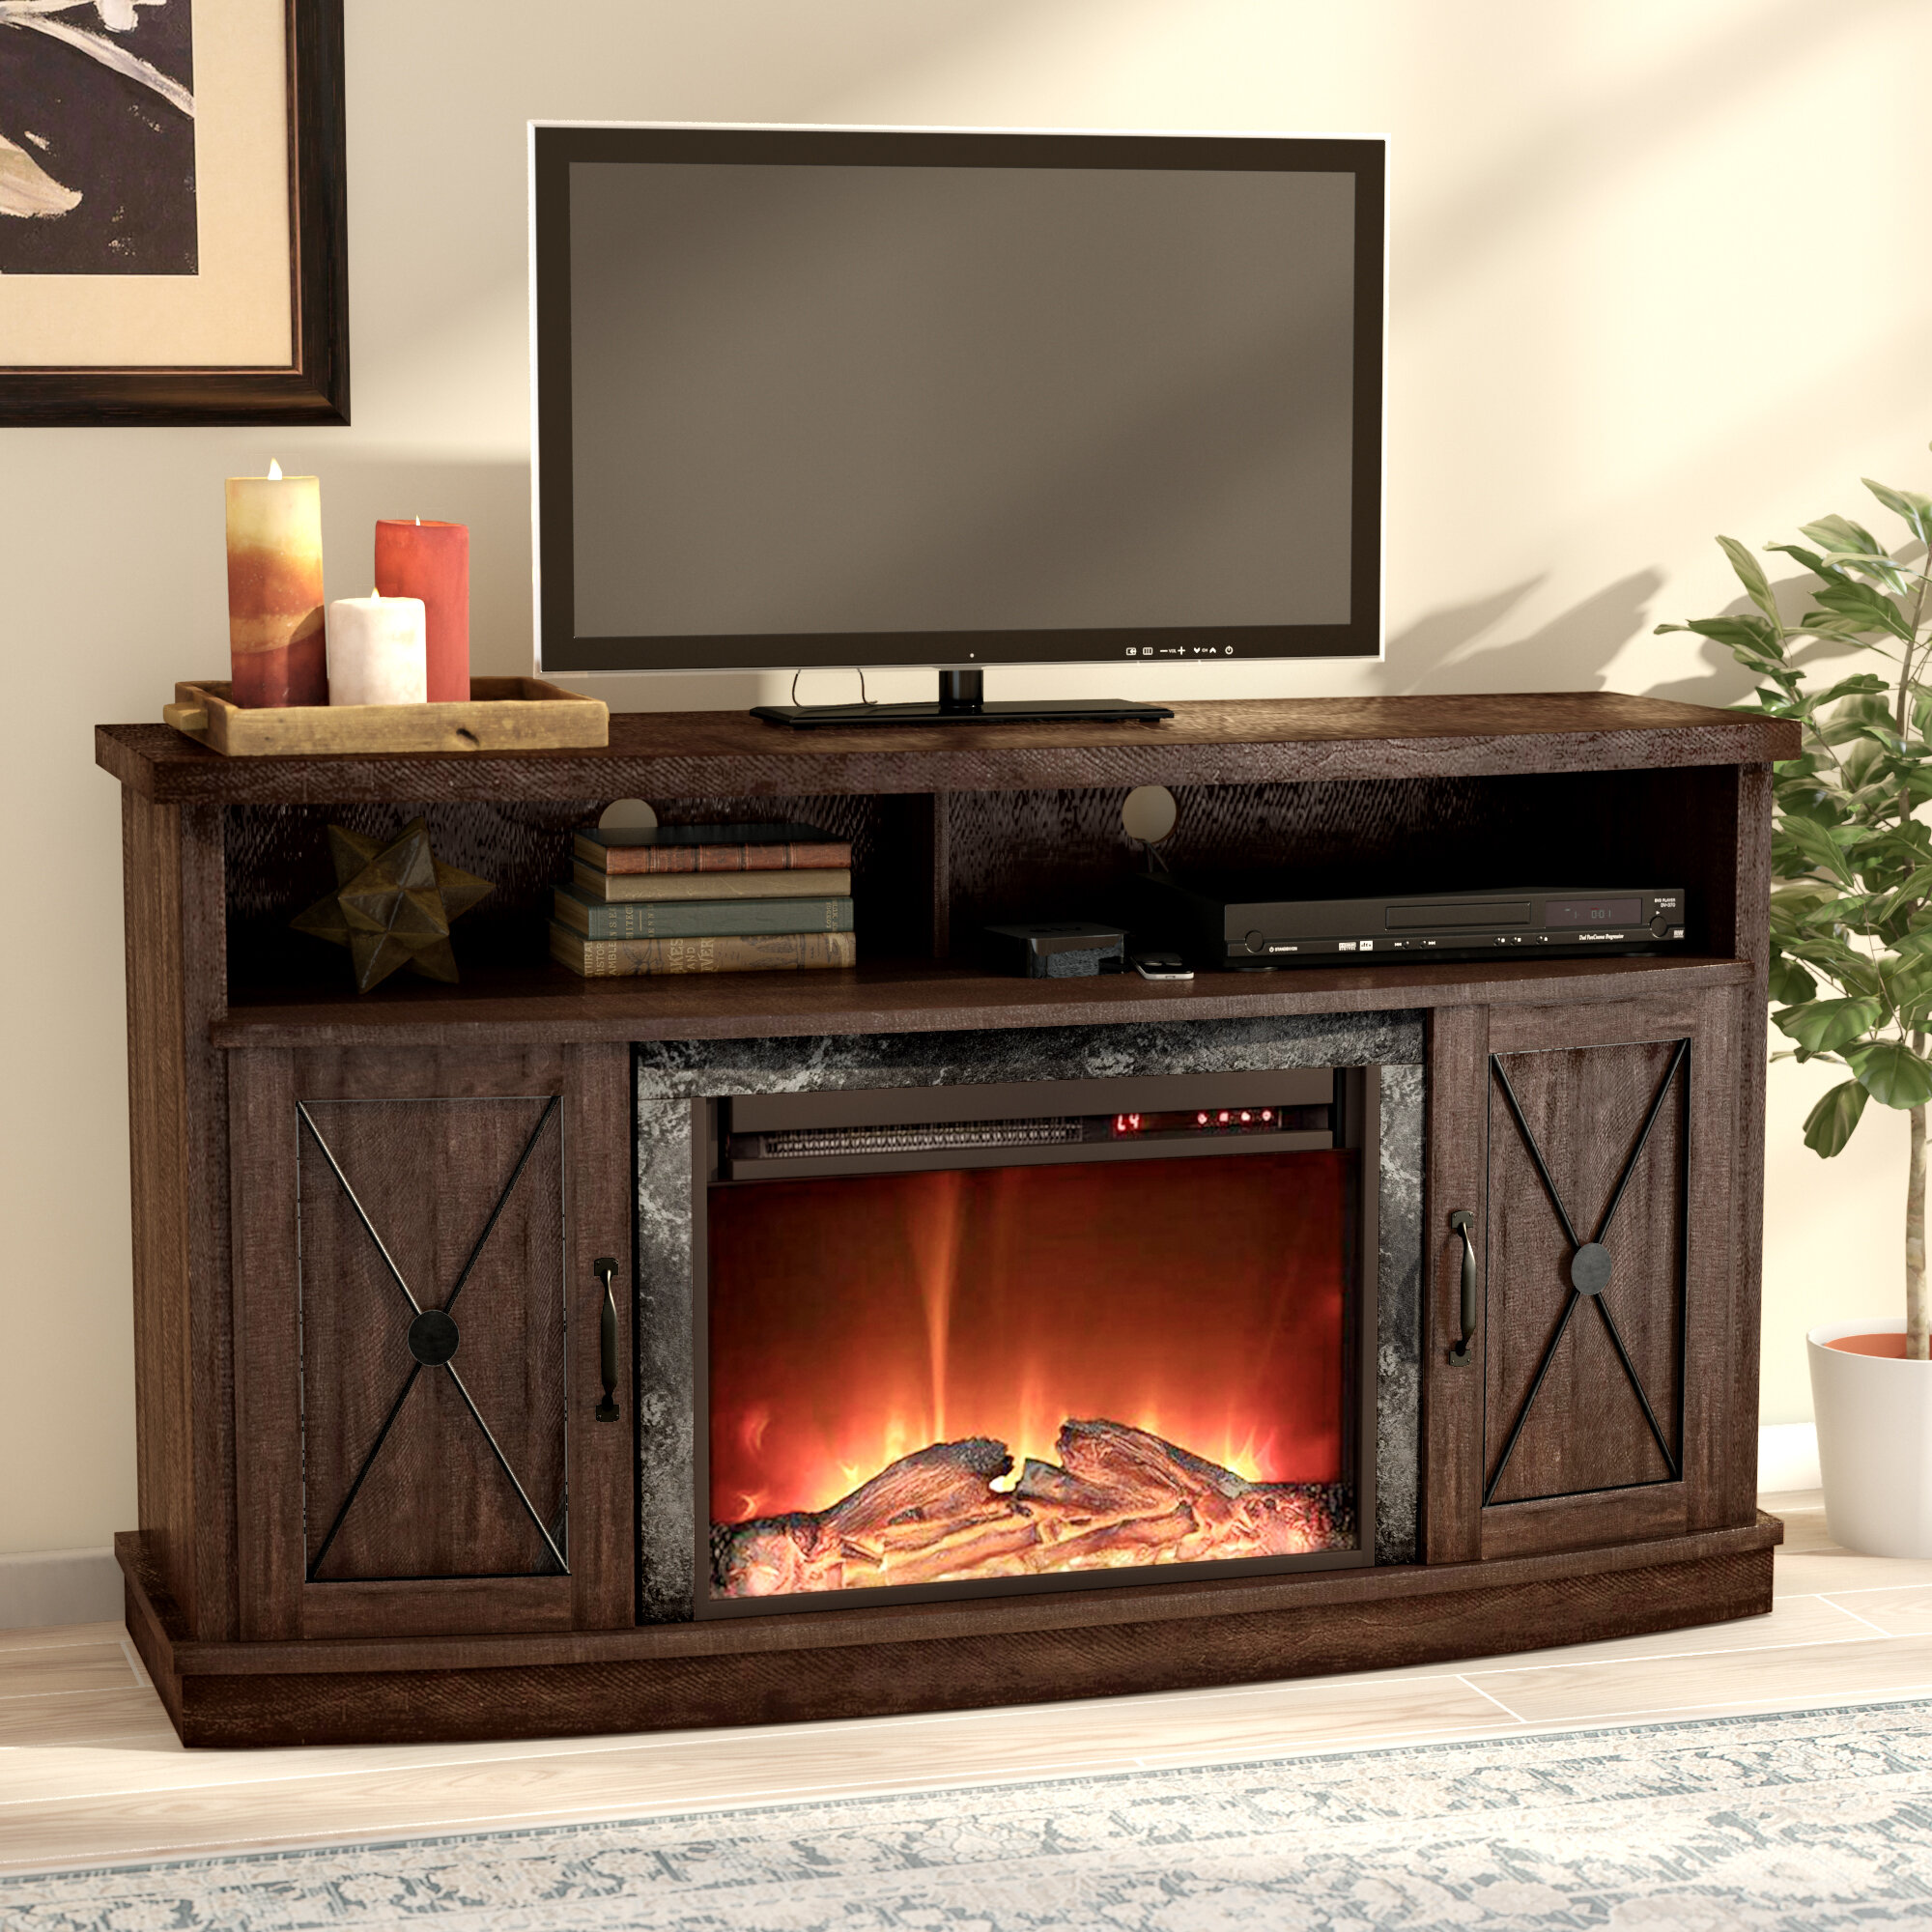 Remarkable Darby Home Co Schuyler Tv Stand For Tvs Up To 60 With Interior Design Ideas Gentotthenellocom